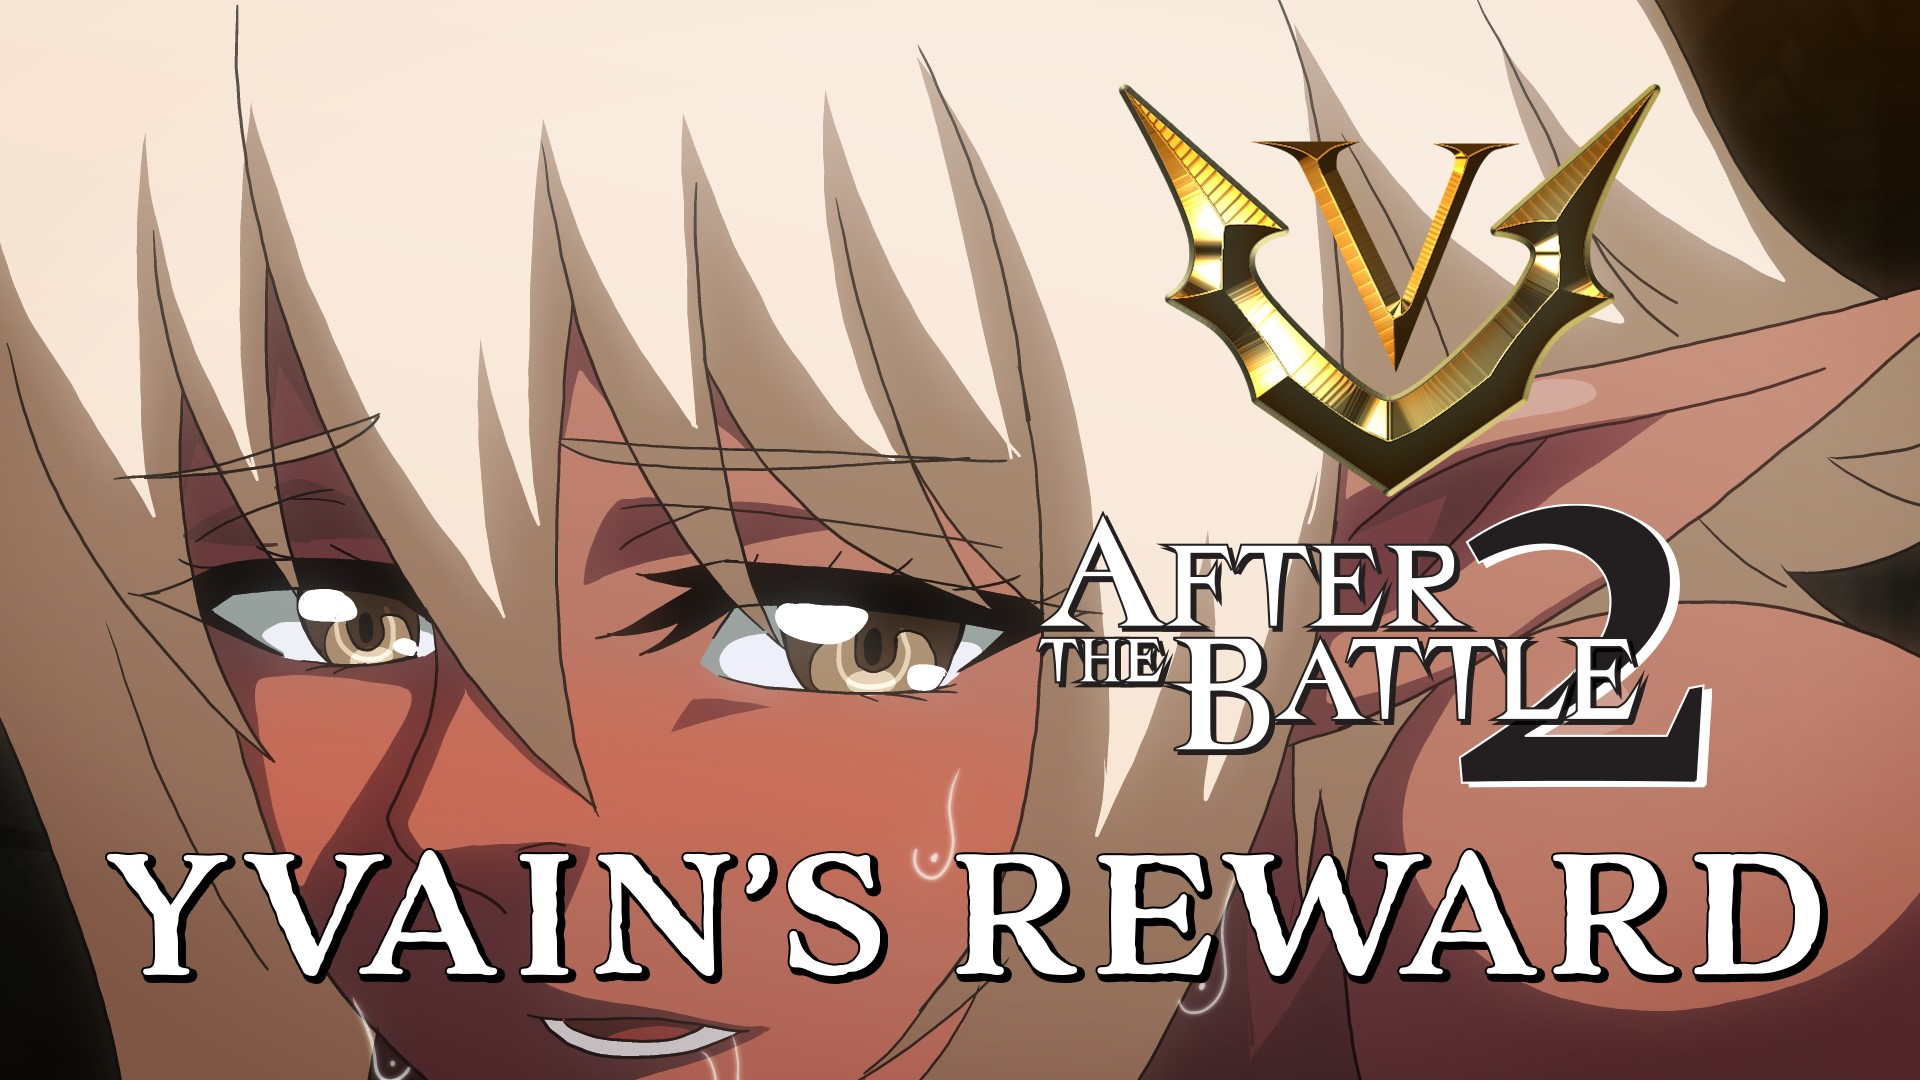 YvainsReward 3B Thumbnail - Keras's wet dream